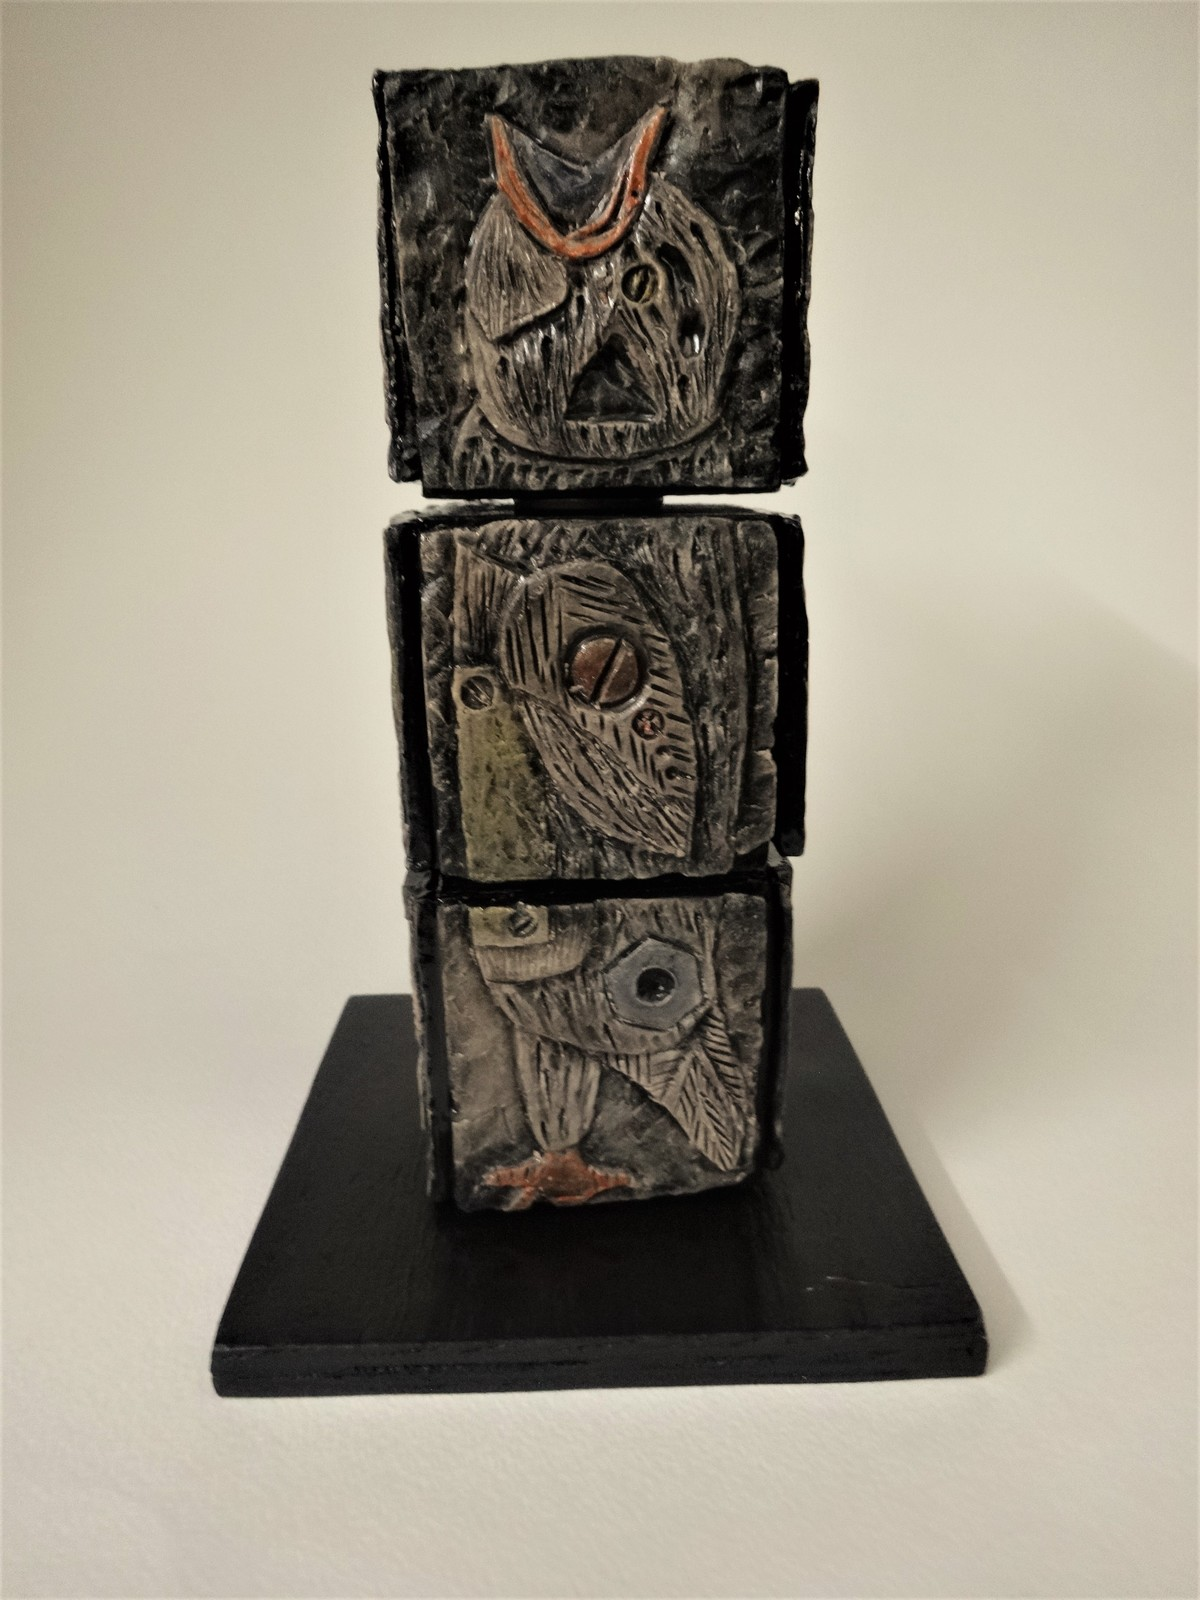 Christina banerjee '''totem birds 1''